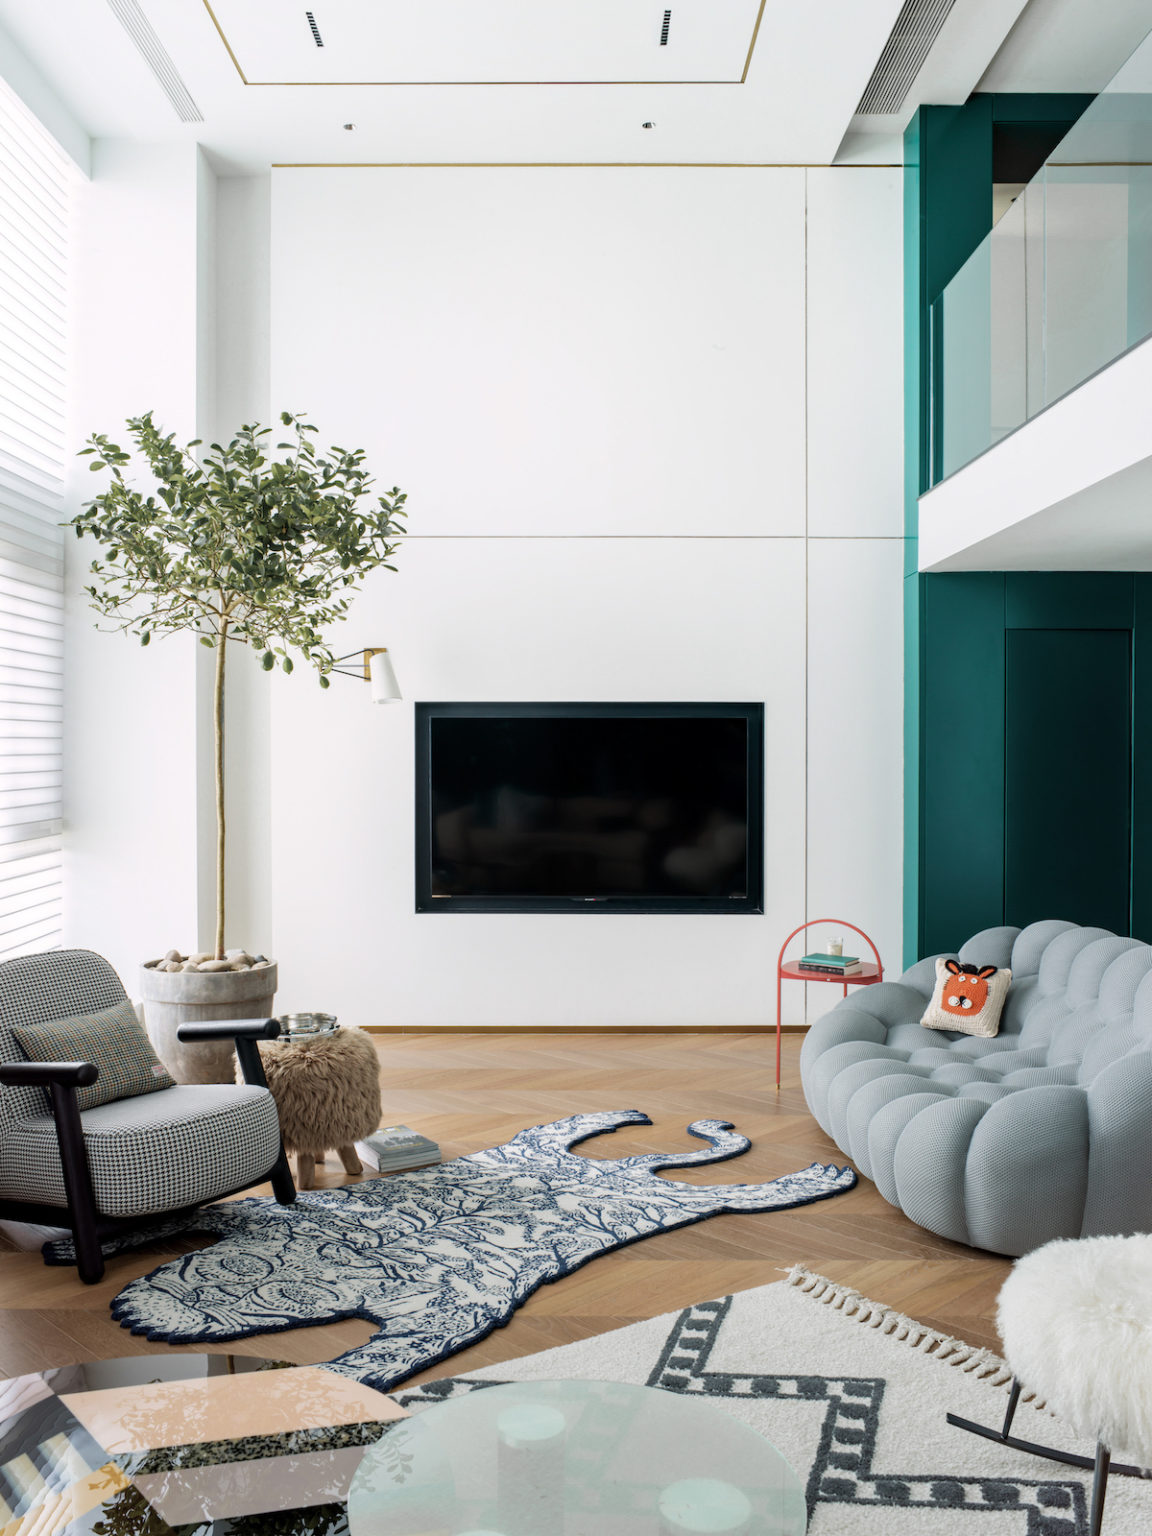 This is another sittign room, with a catchy soft sofa, a built in TV, layered rugs and a potted tree